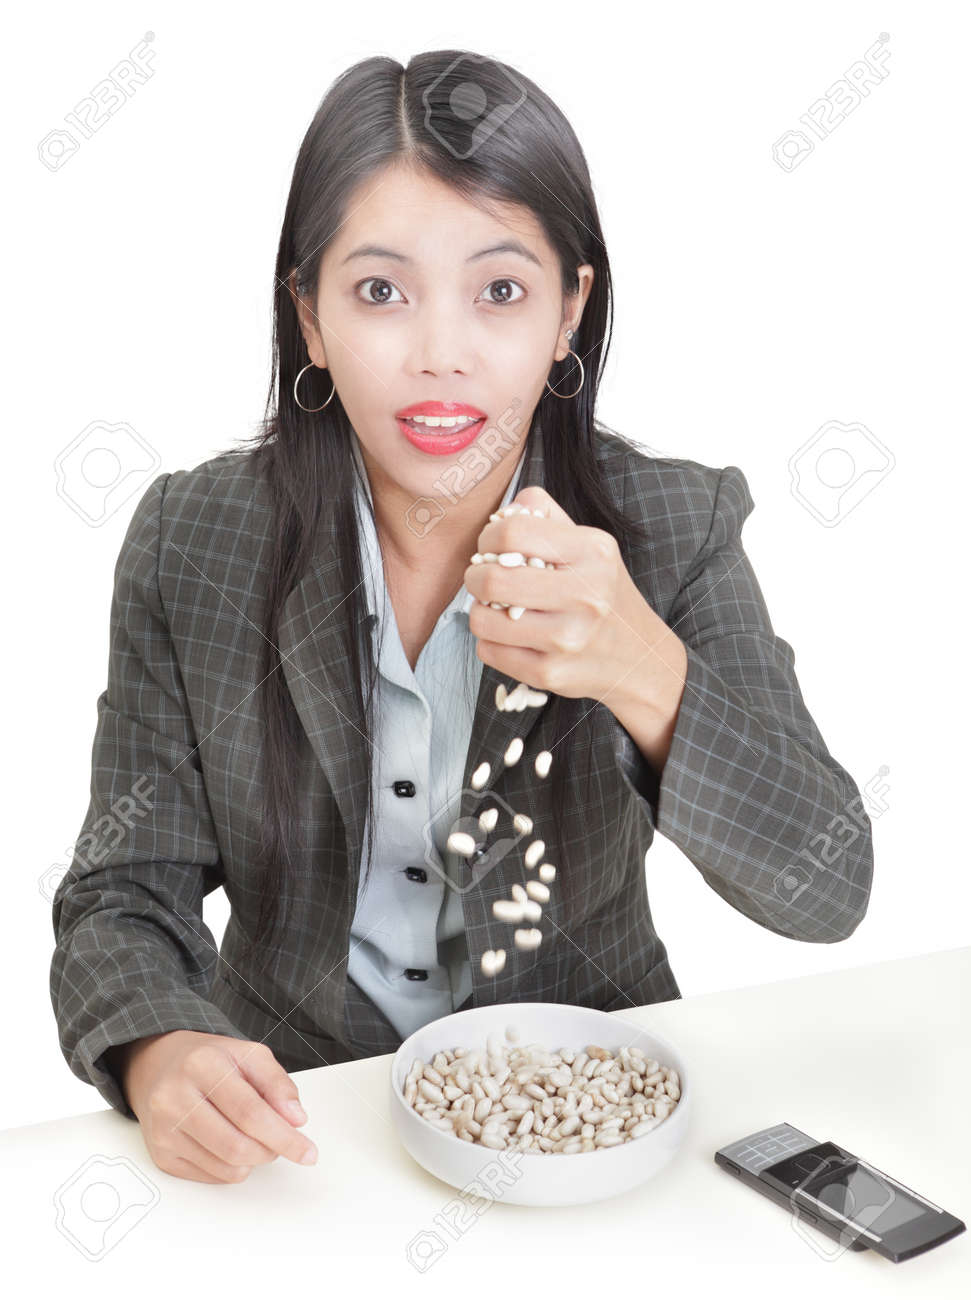 Young Asian businesswoman at her desk spilling the beans: English idiom and metaphor of betraying a secret or bring out confidential information. Isolated over white. Stock Photo - 9229788